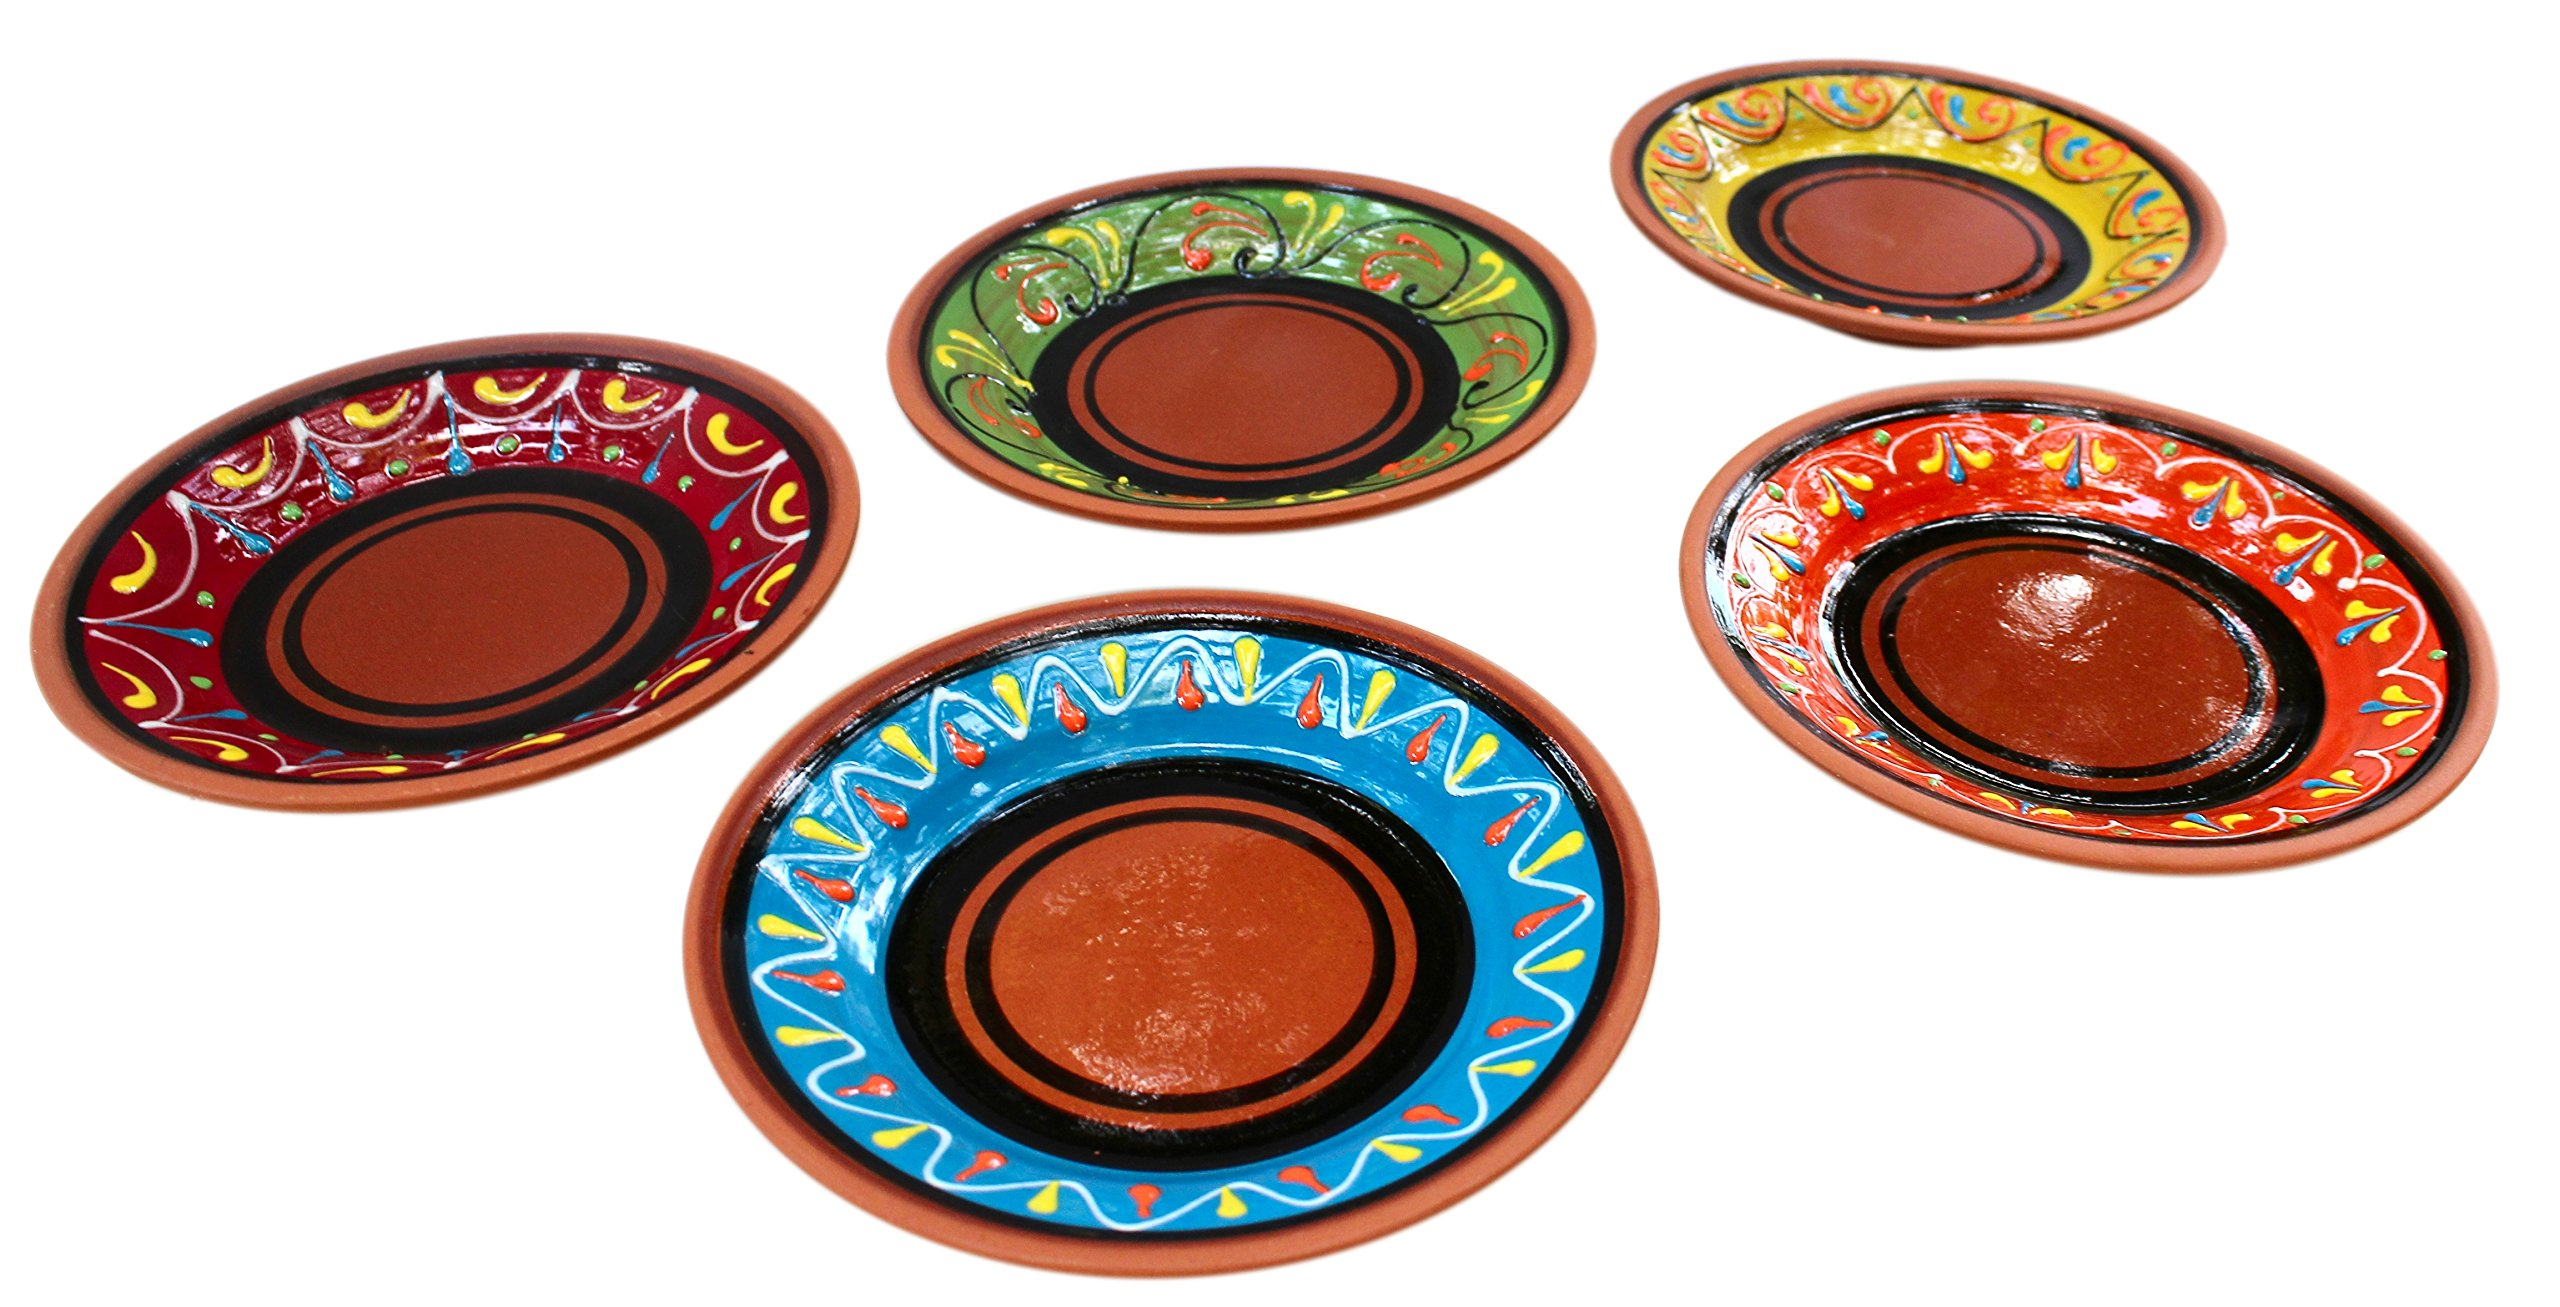 SMALL, Terracotta Tapa Plates Set of 5 - Hand Painted From Spain